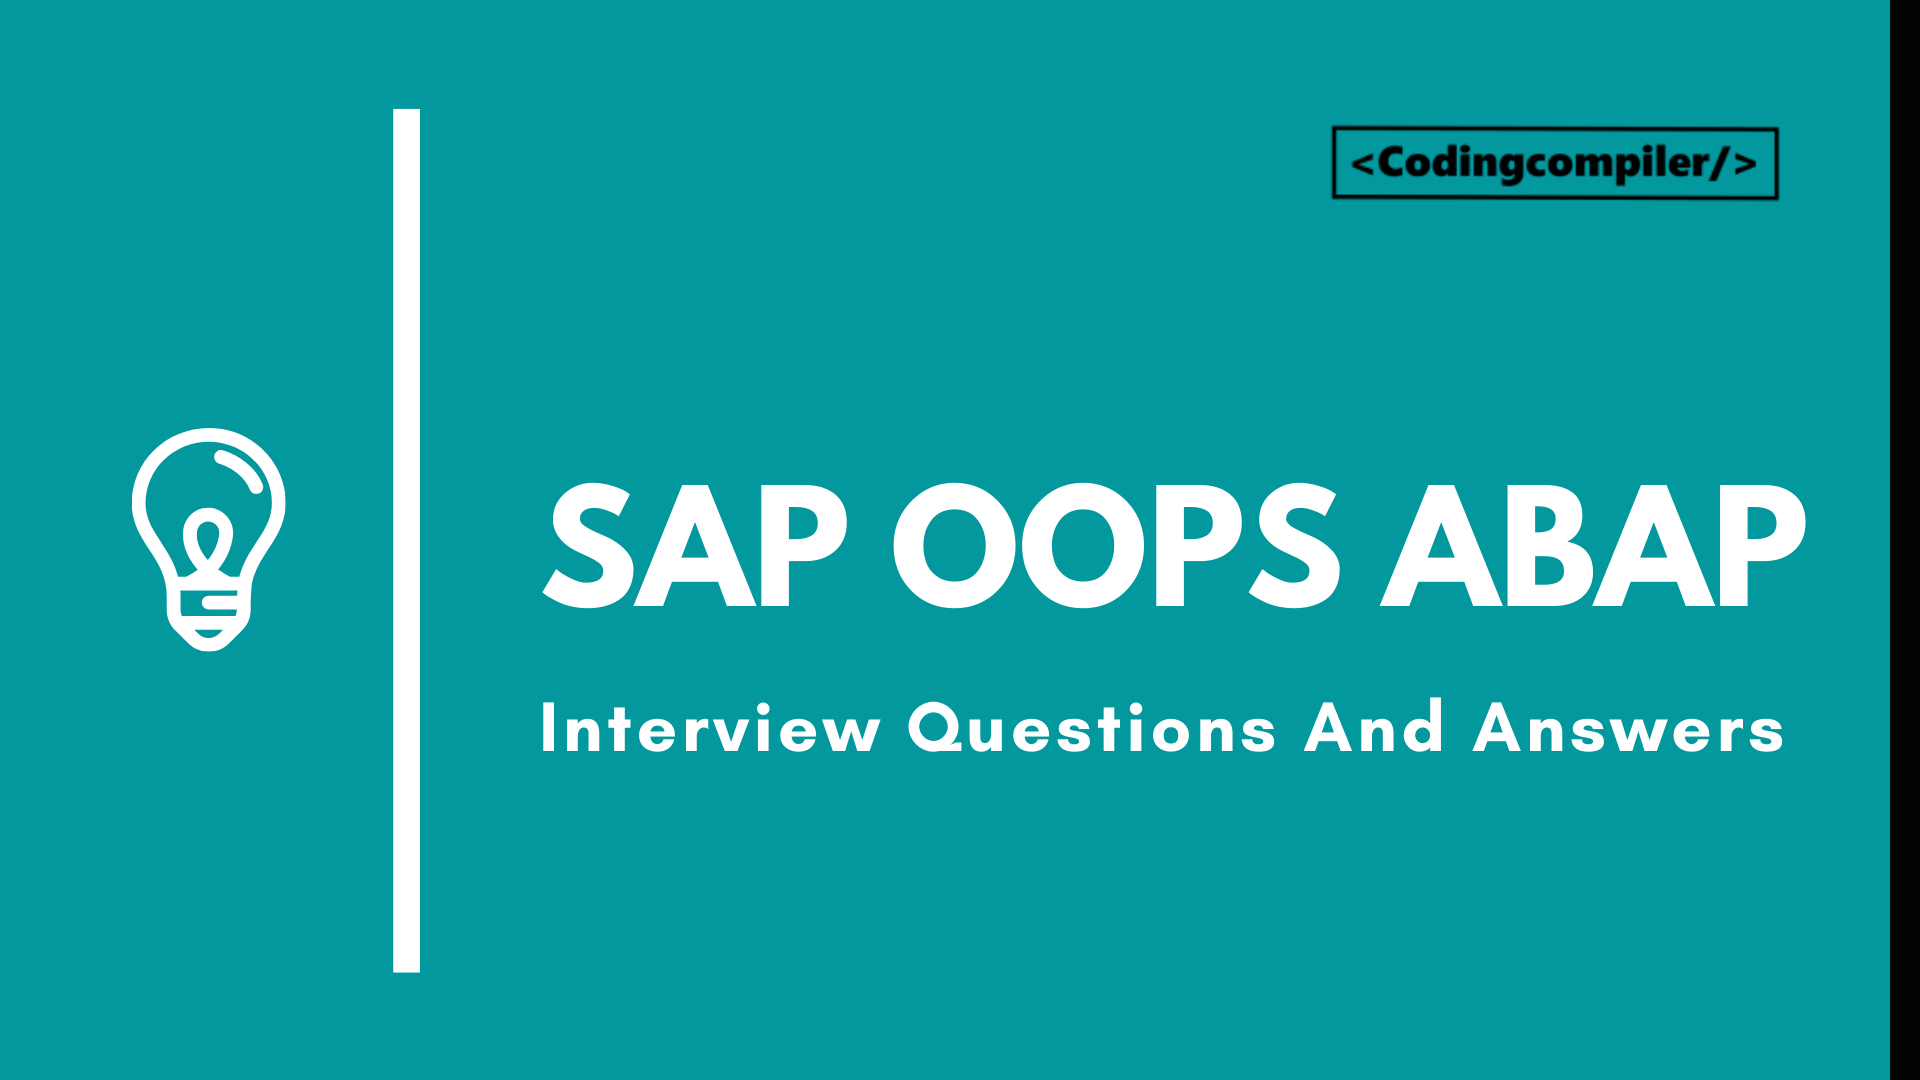 SAP OOPS ABAP Interview Questions